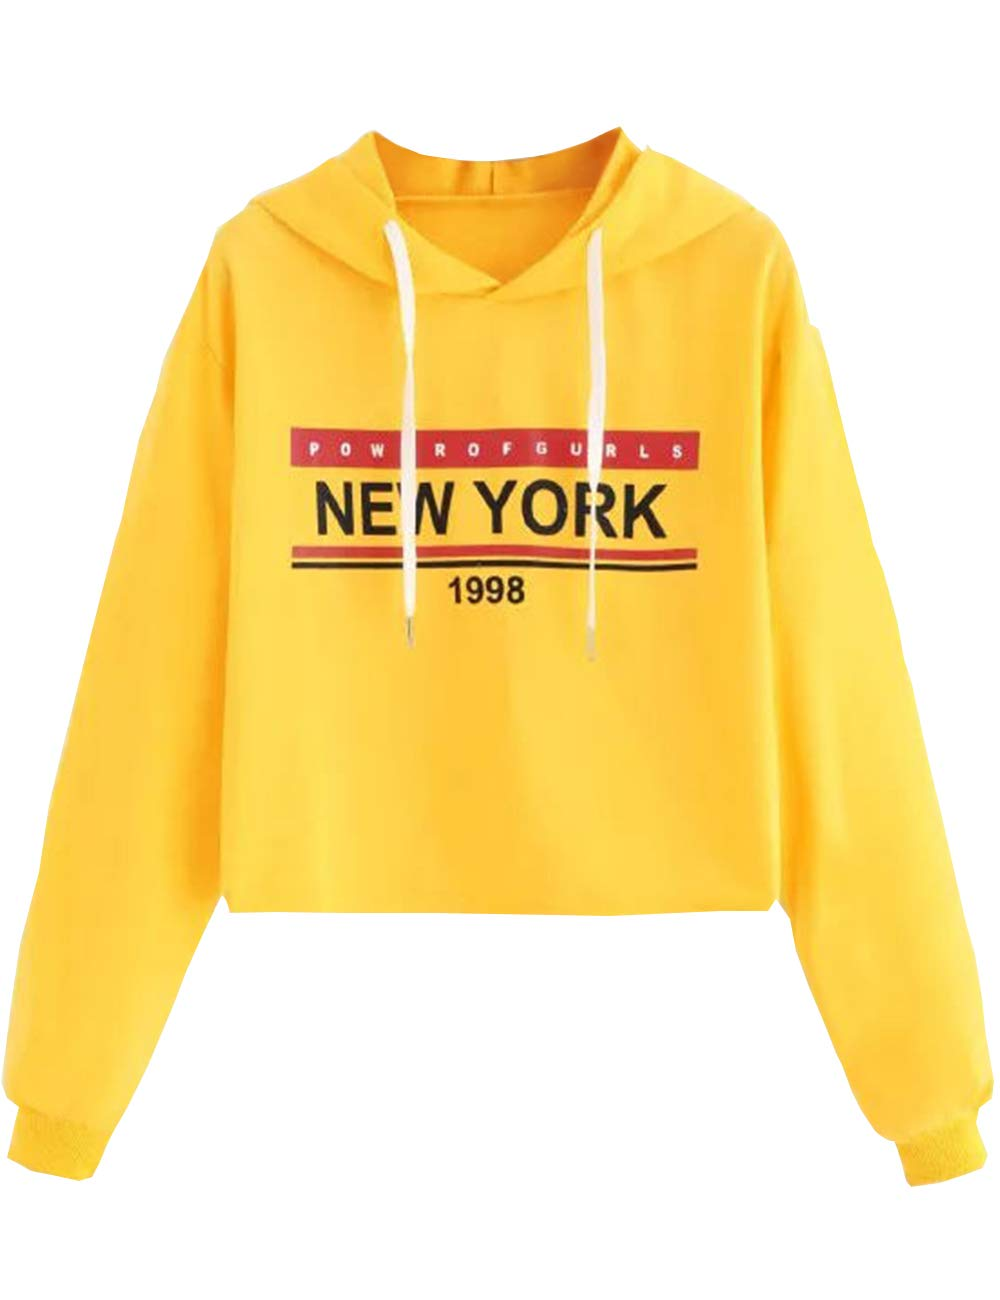 Sweatshirts Teen Girls USA American Flag Jacket Crop Top Letter Print Cropped Hoodie Pullover Jumper Sweater (G-Yellow, S)